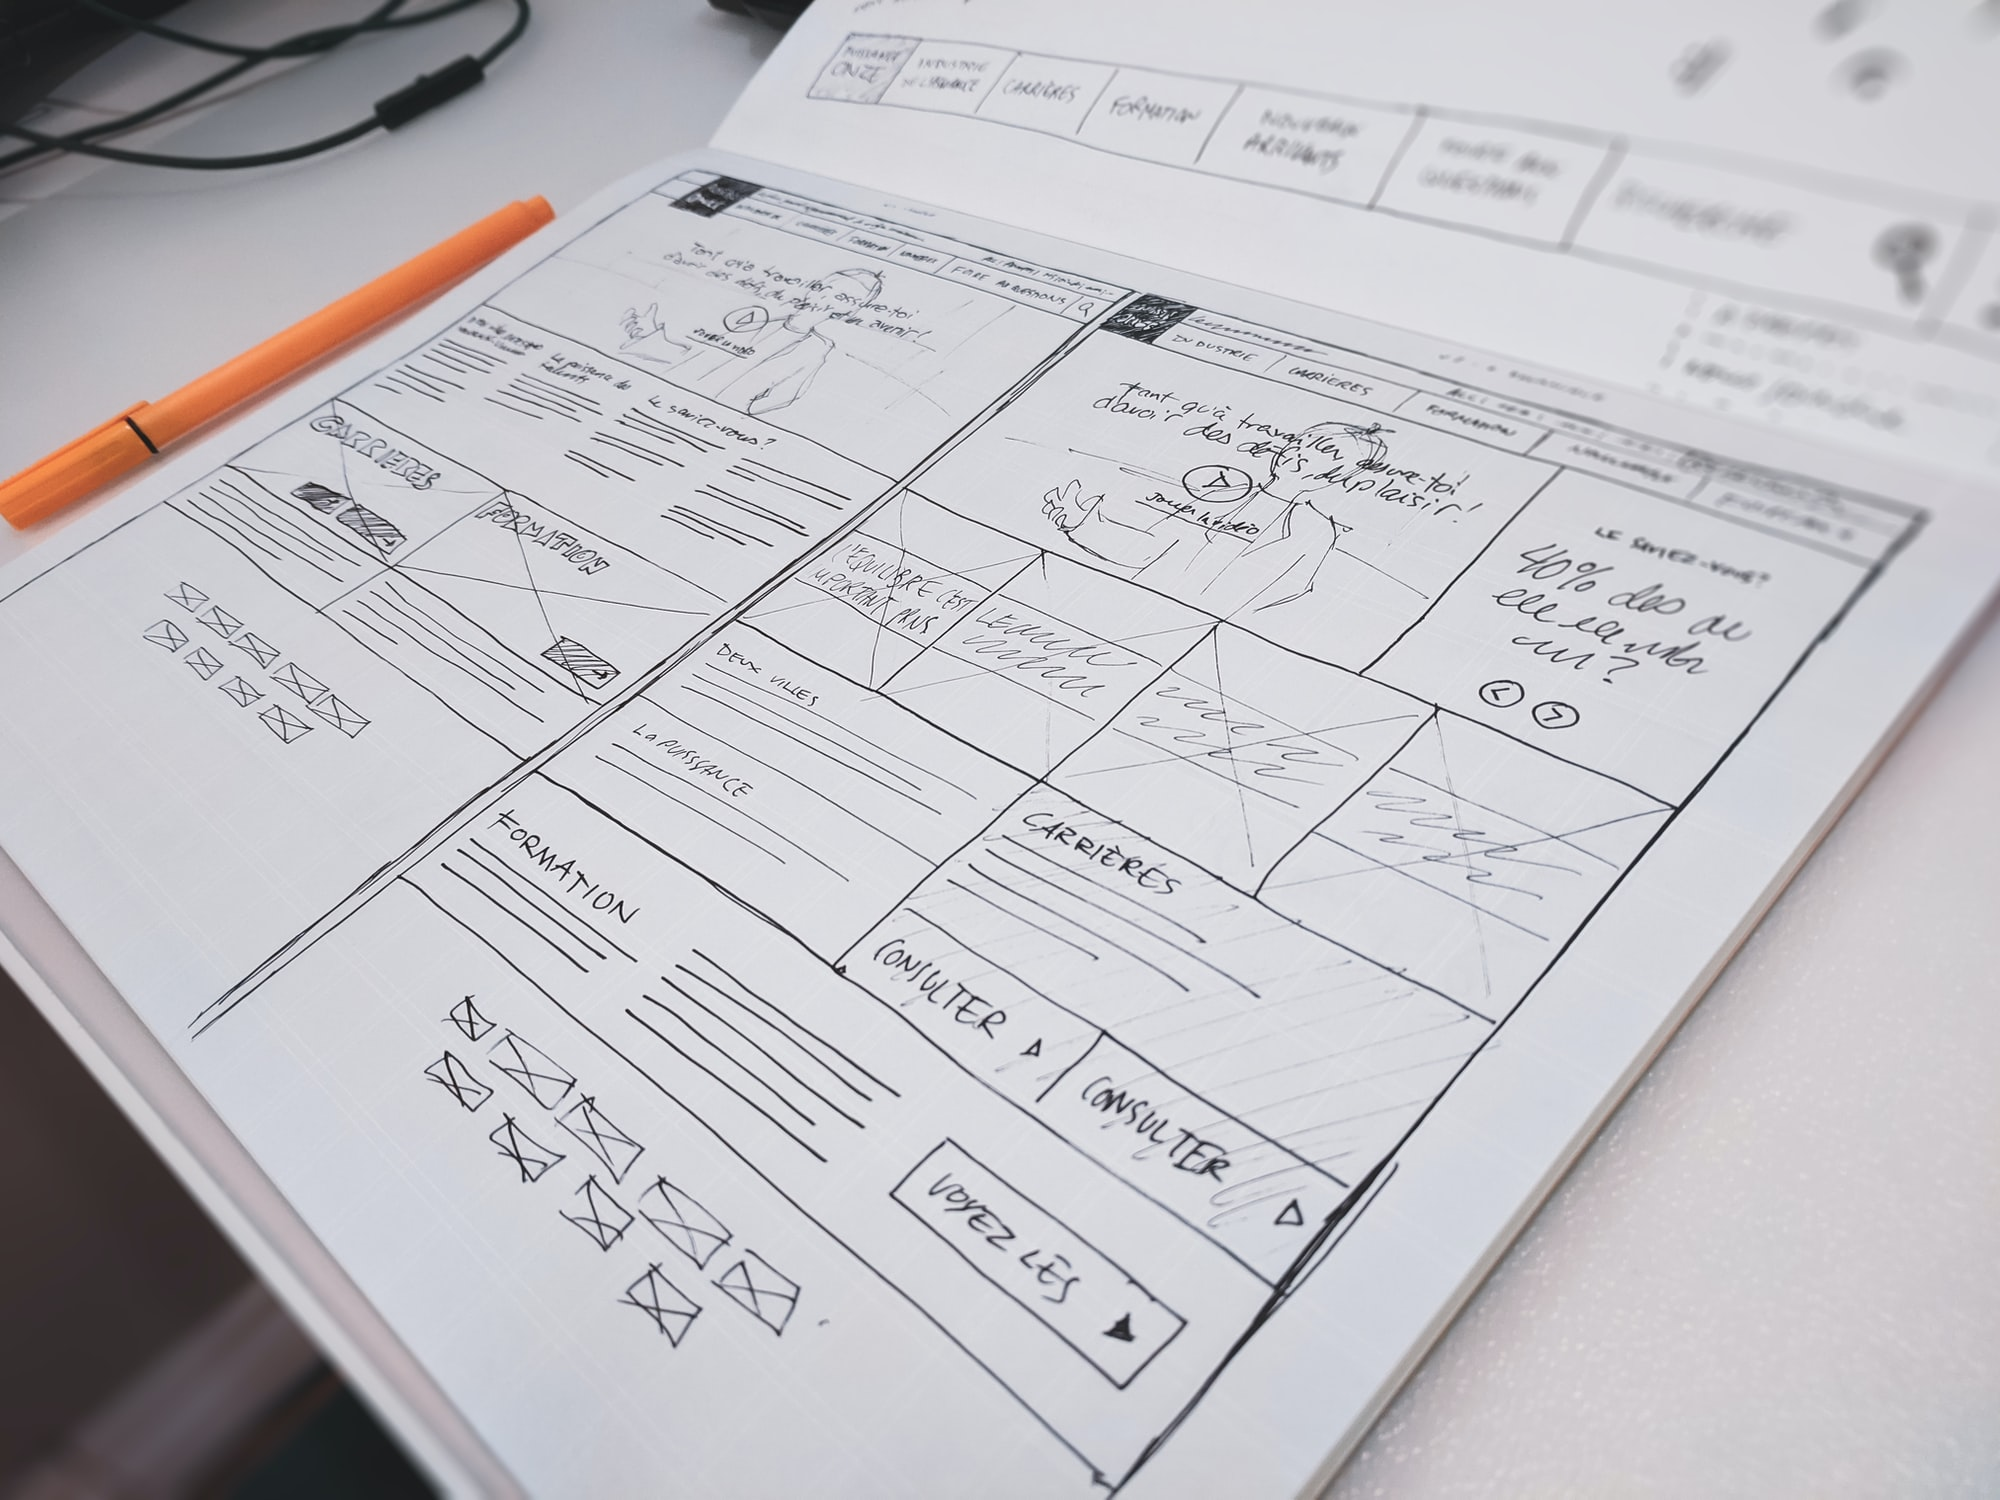 5 Things to Consider When Creating a Marketing Plan